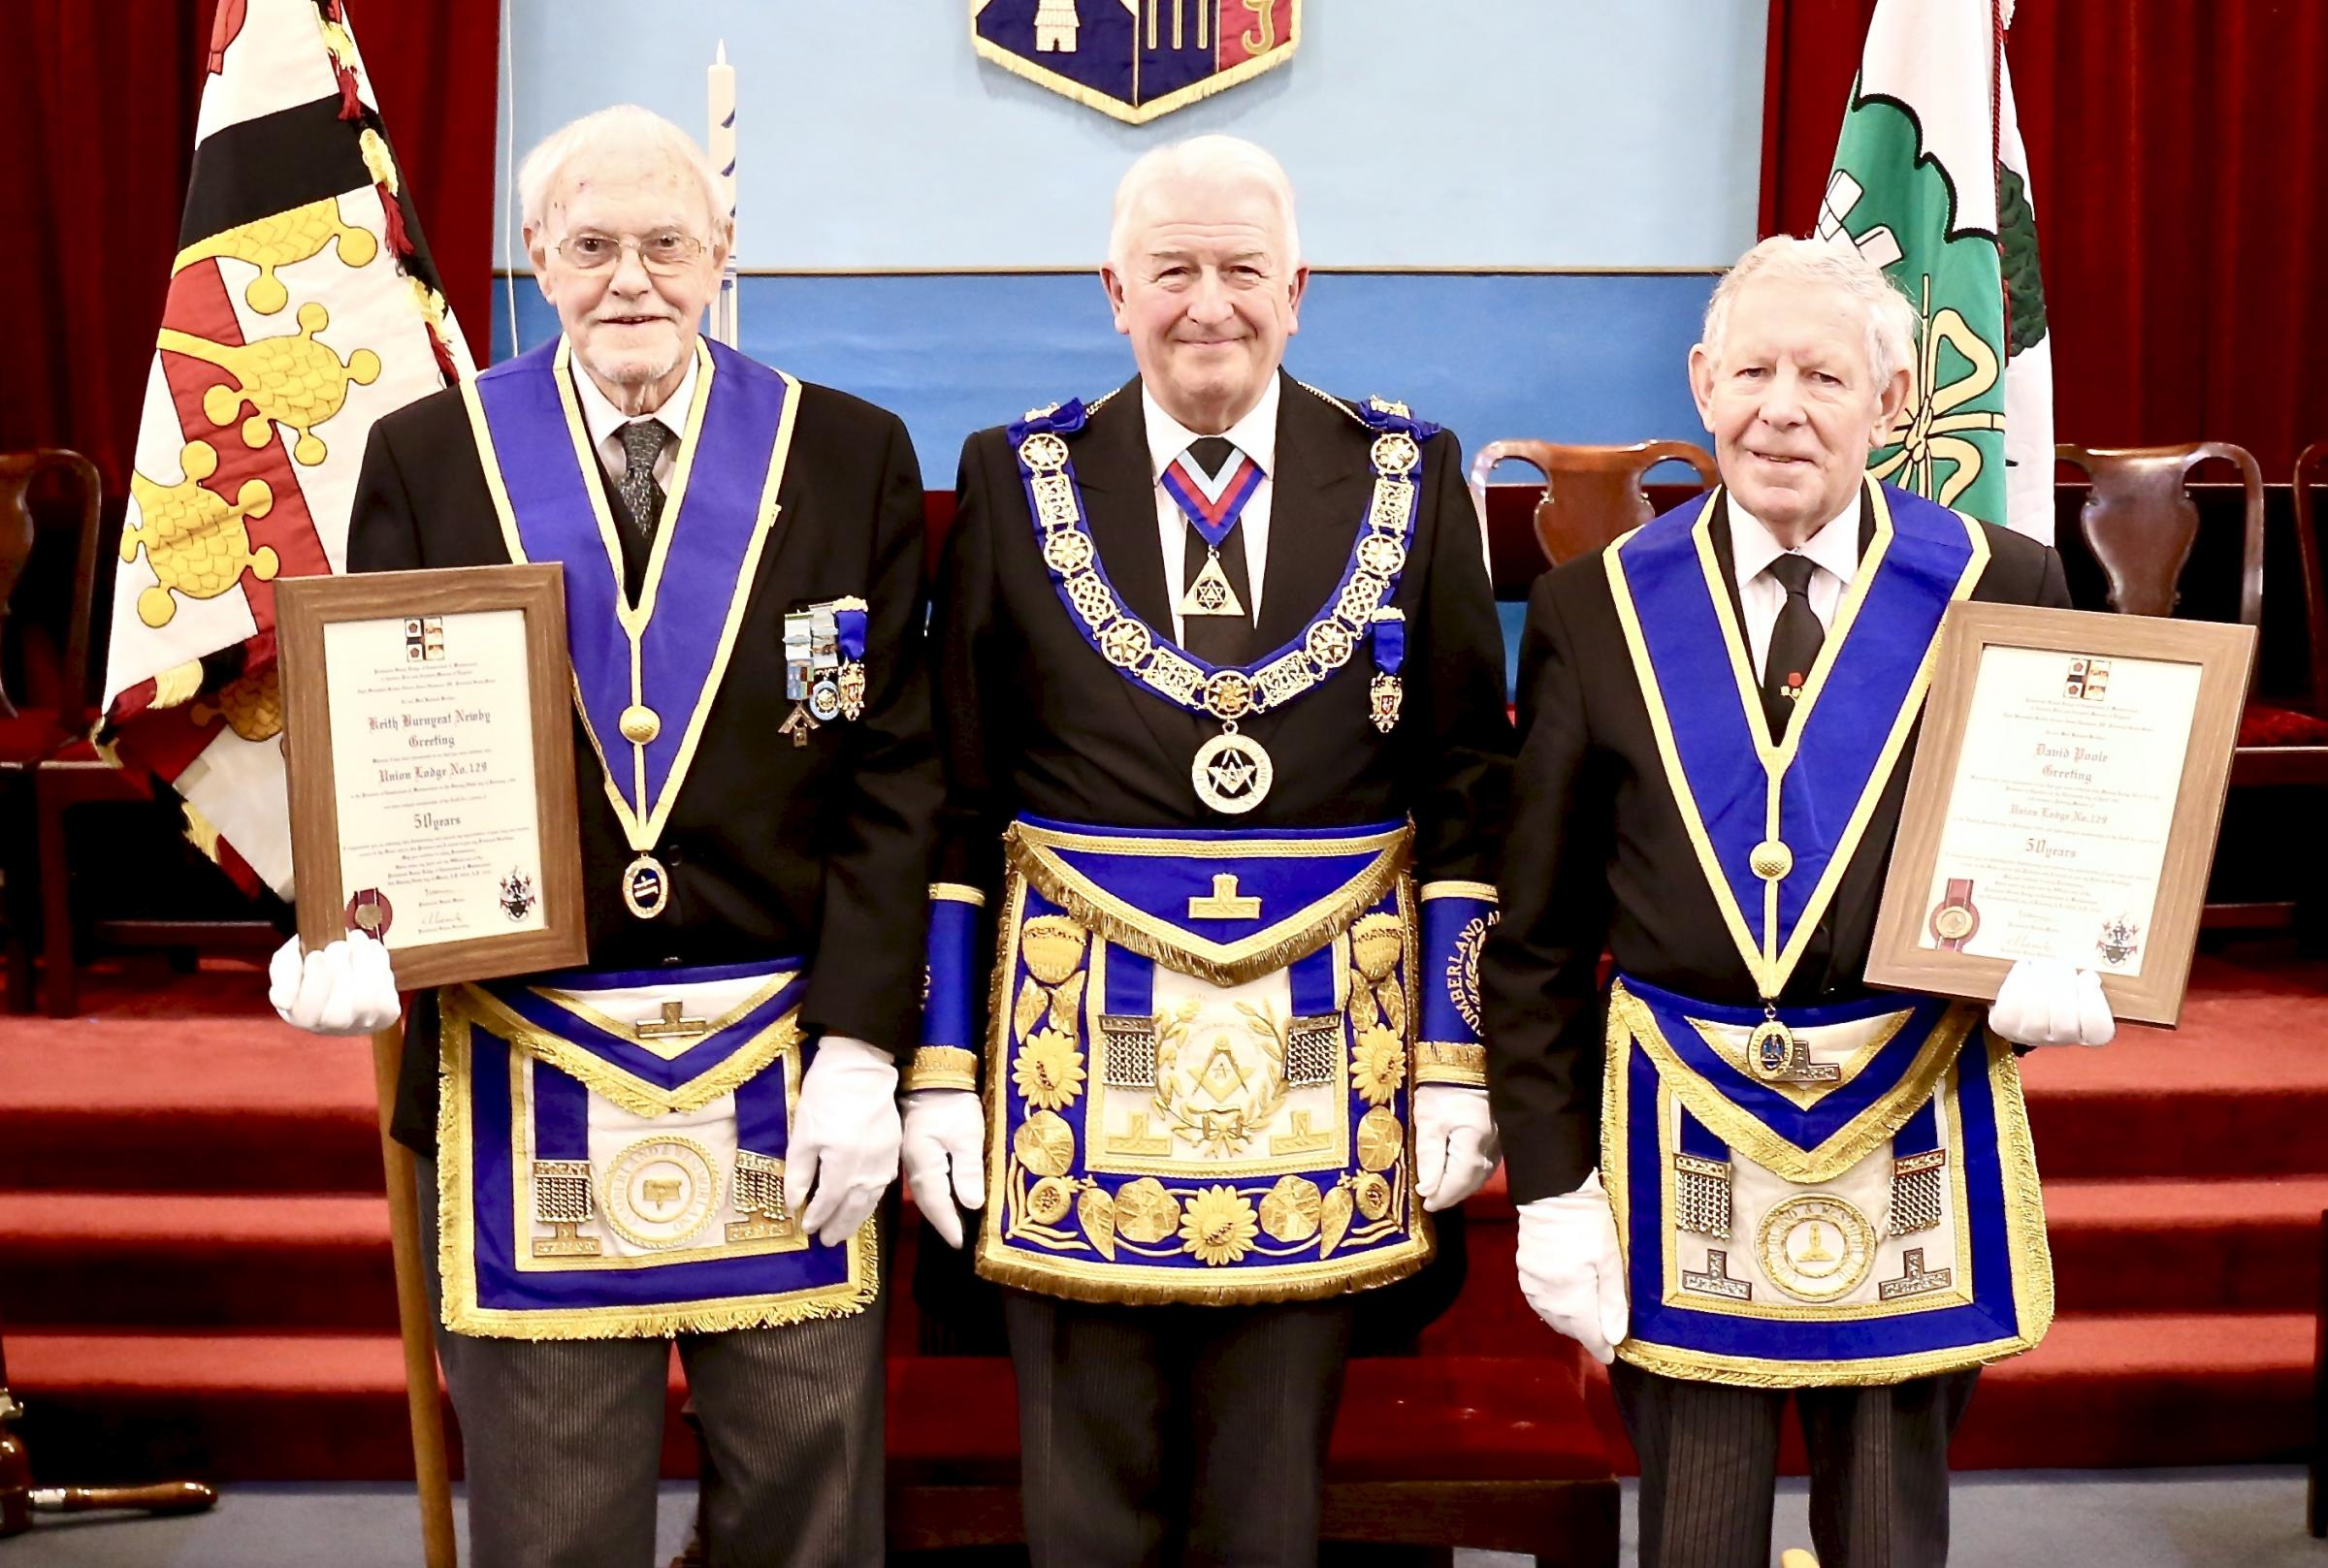 Celebrating their golden jubilee in Freemasonry are Keith Newby, left, and David Poole OBE, right, pictured with provincial grand master Norman Thompson (PICTURE: Brian Ferrington)